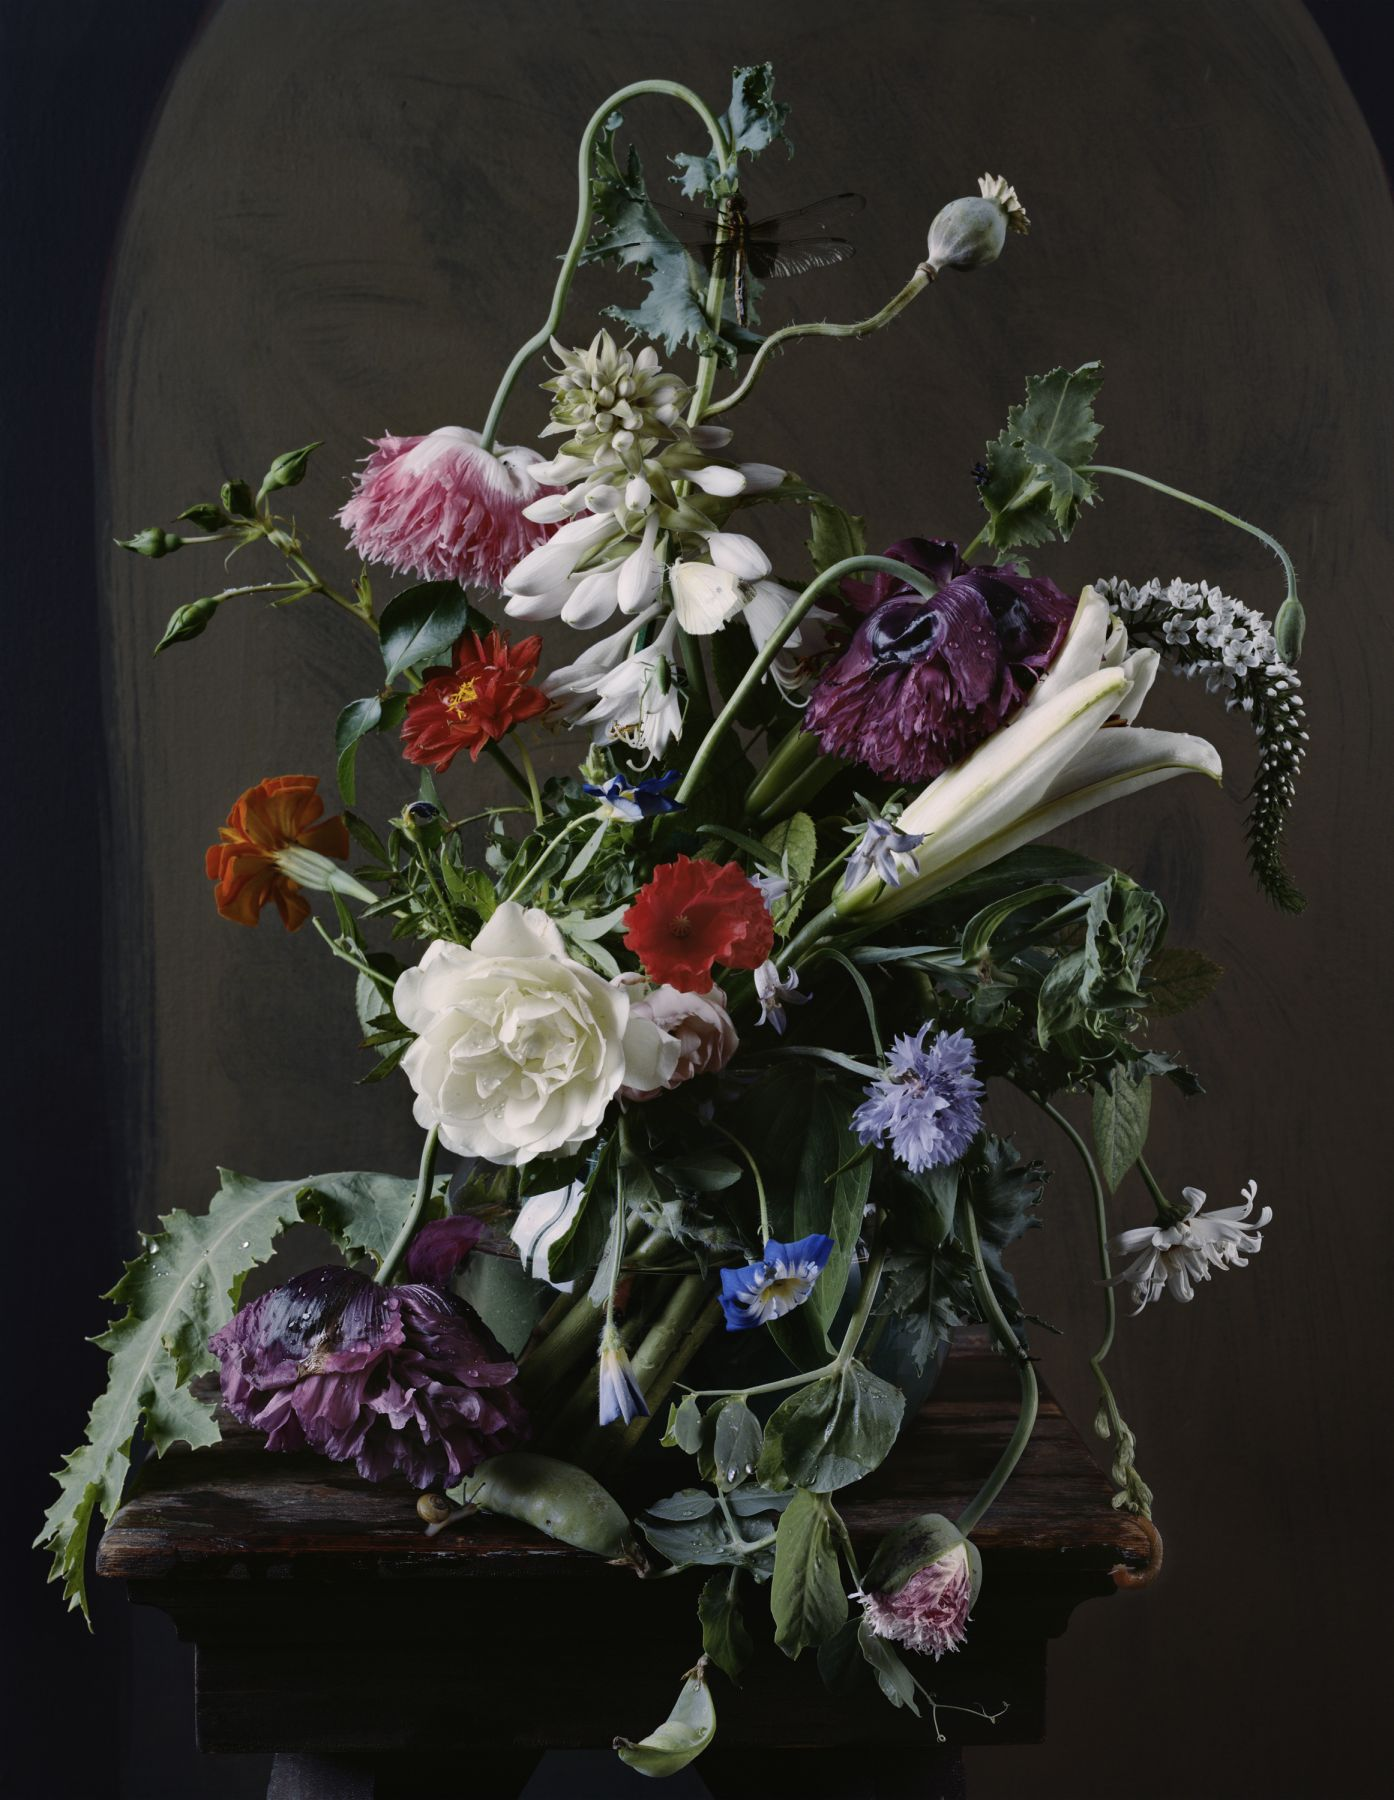 Photograph by Sharon Core titled 1720 from the series 1606-1907 of a floral still life arranged in the style of a classical painting